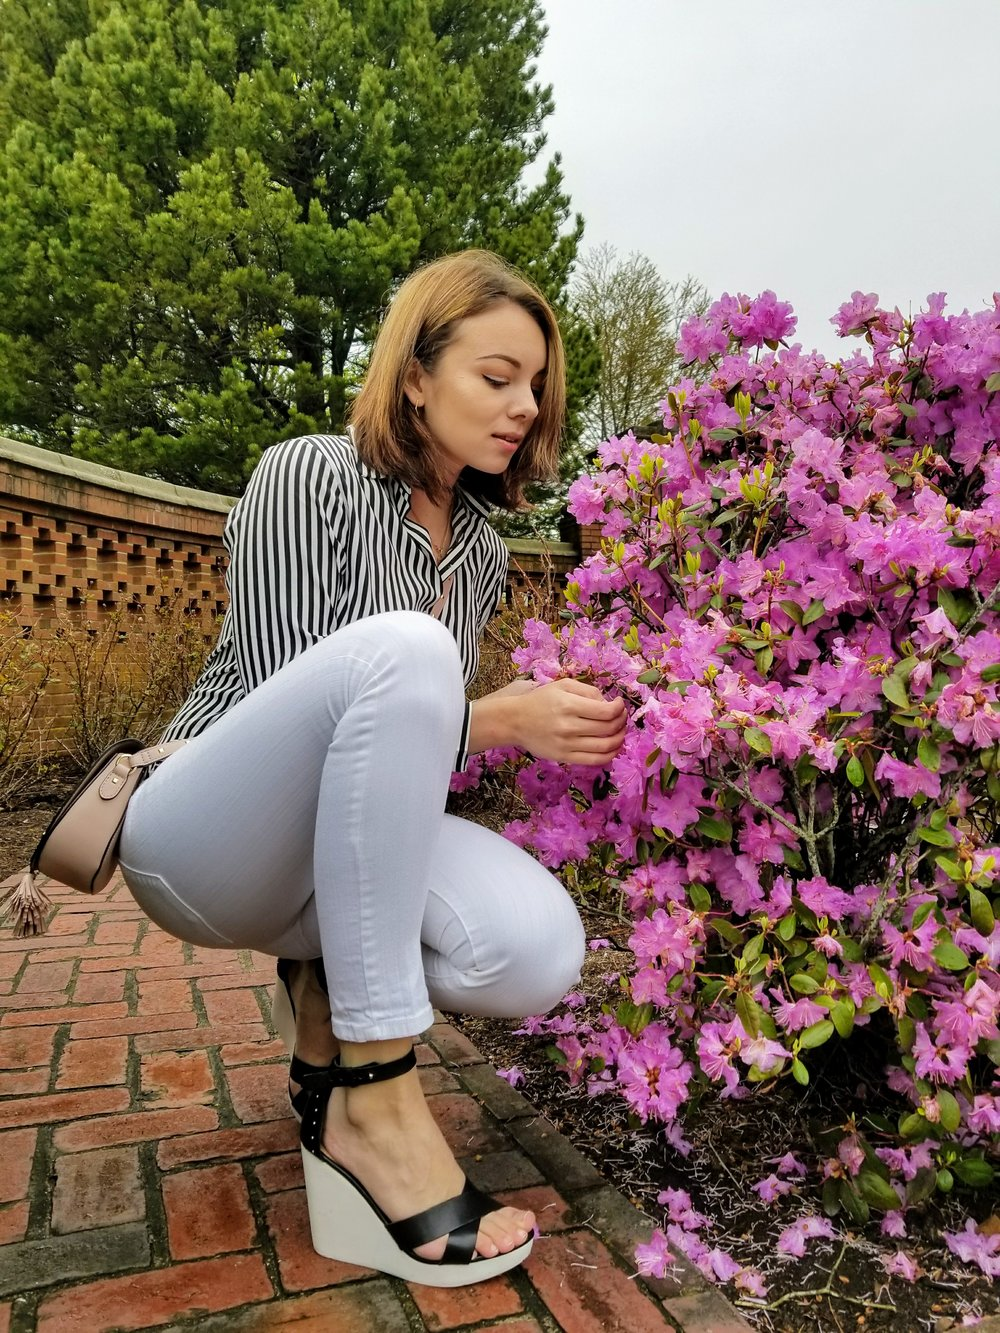 A girl sitting by the pink flowers, wearing white jeans, blouse with stripes, and black and white wedges.